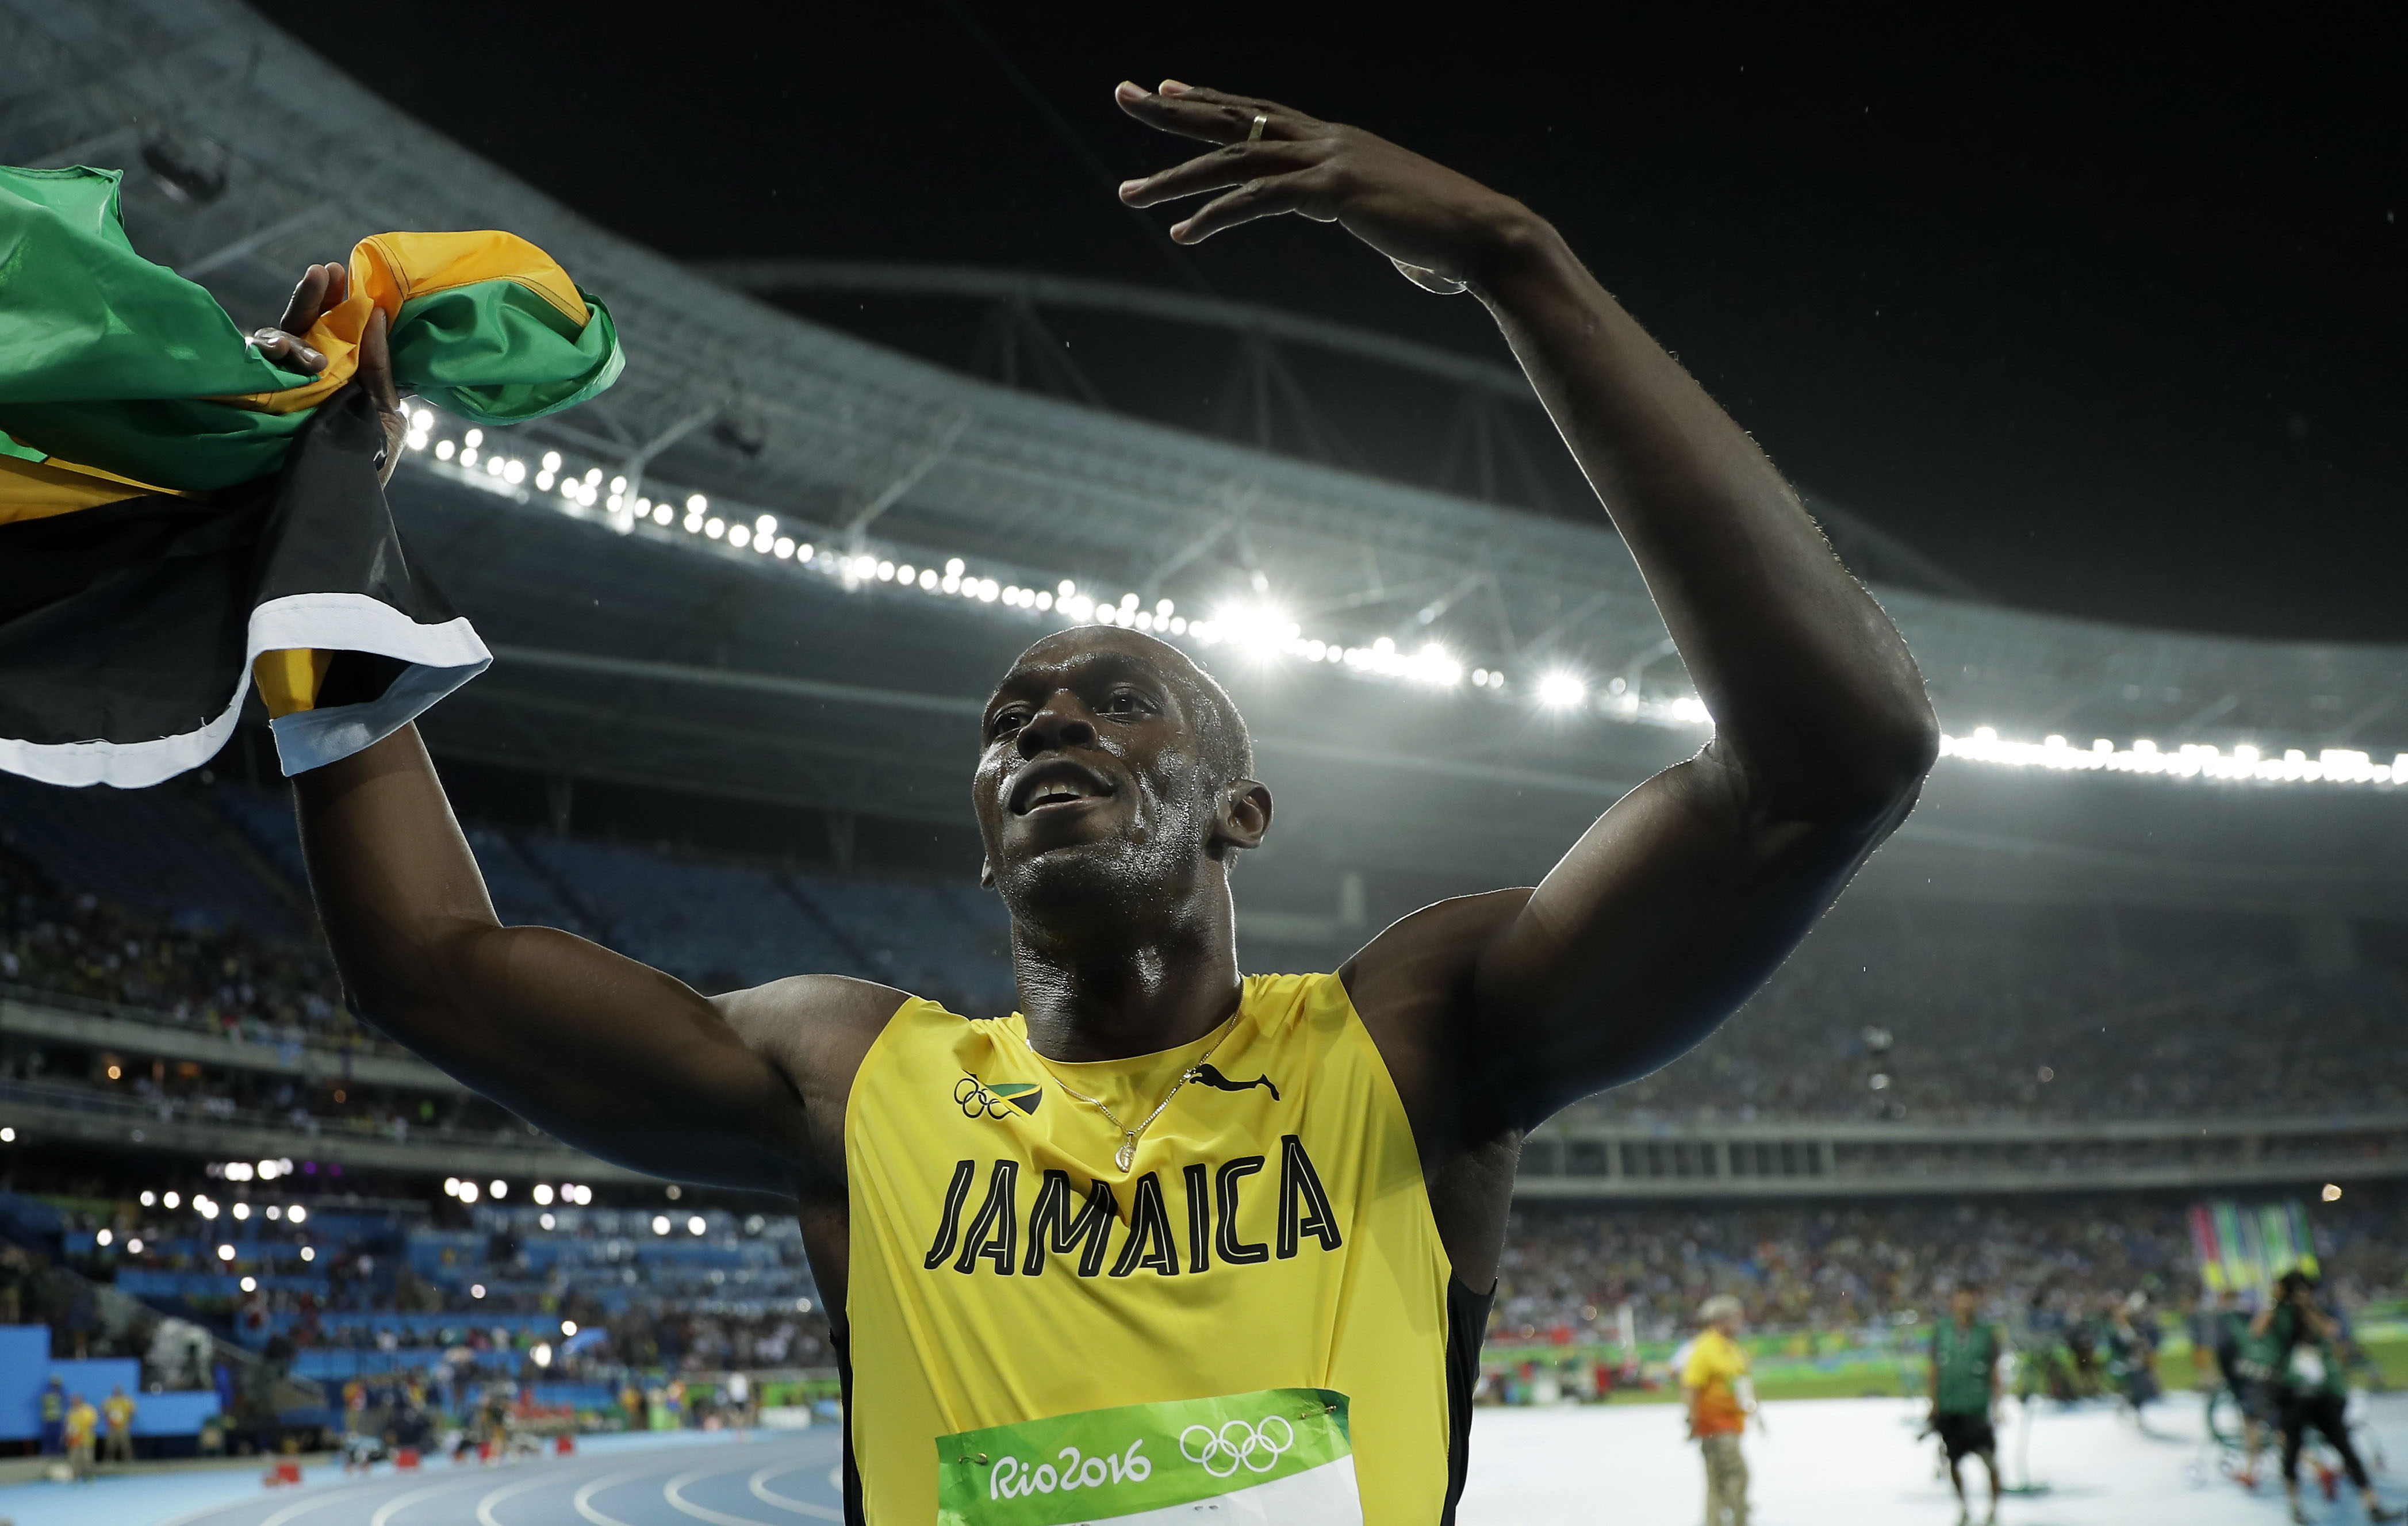 Usain Bolt from Jamaica poses for photographers with the Jamaican flag after winning the gold medal in the men's 200-meter final, during the athletics competitions of the 2016 Summer Olympics at the Olympic stadium in Rio de Janeiro, Brazil, on Thursday, August 18, 2016. Photo: AP